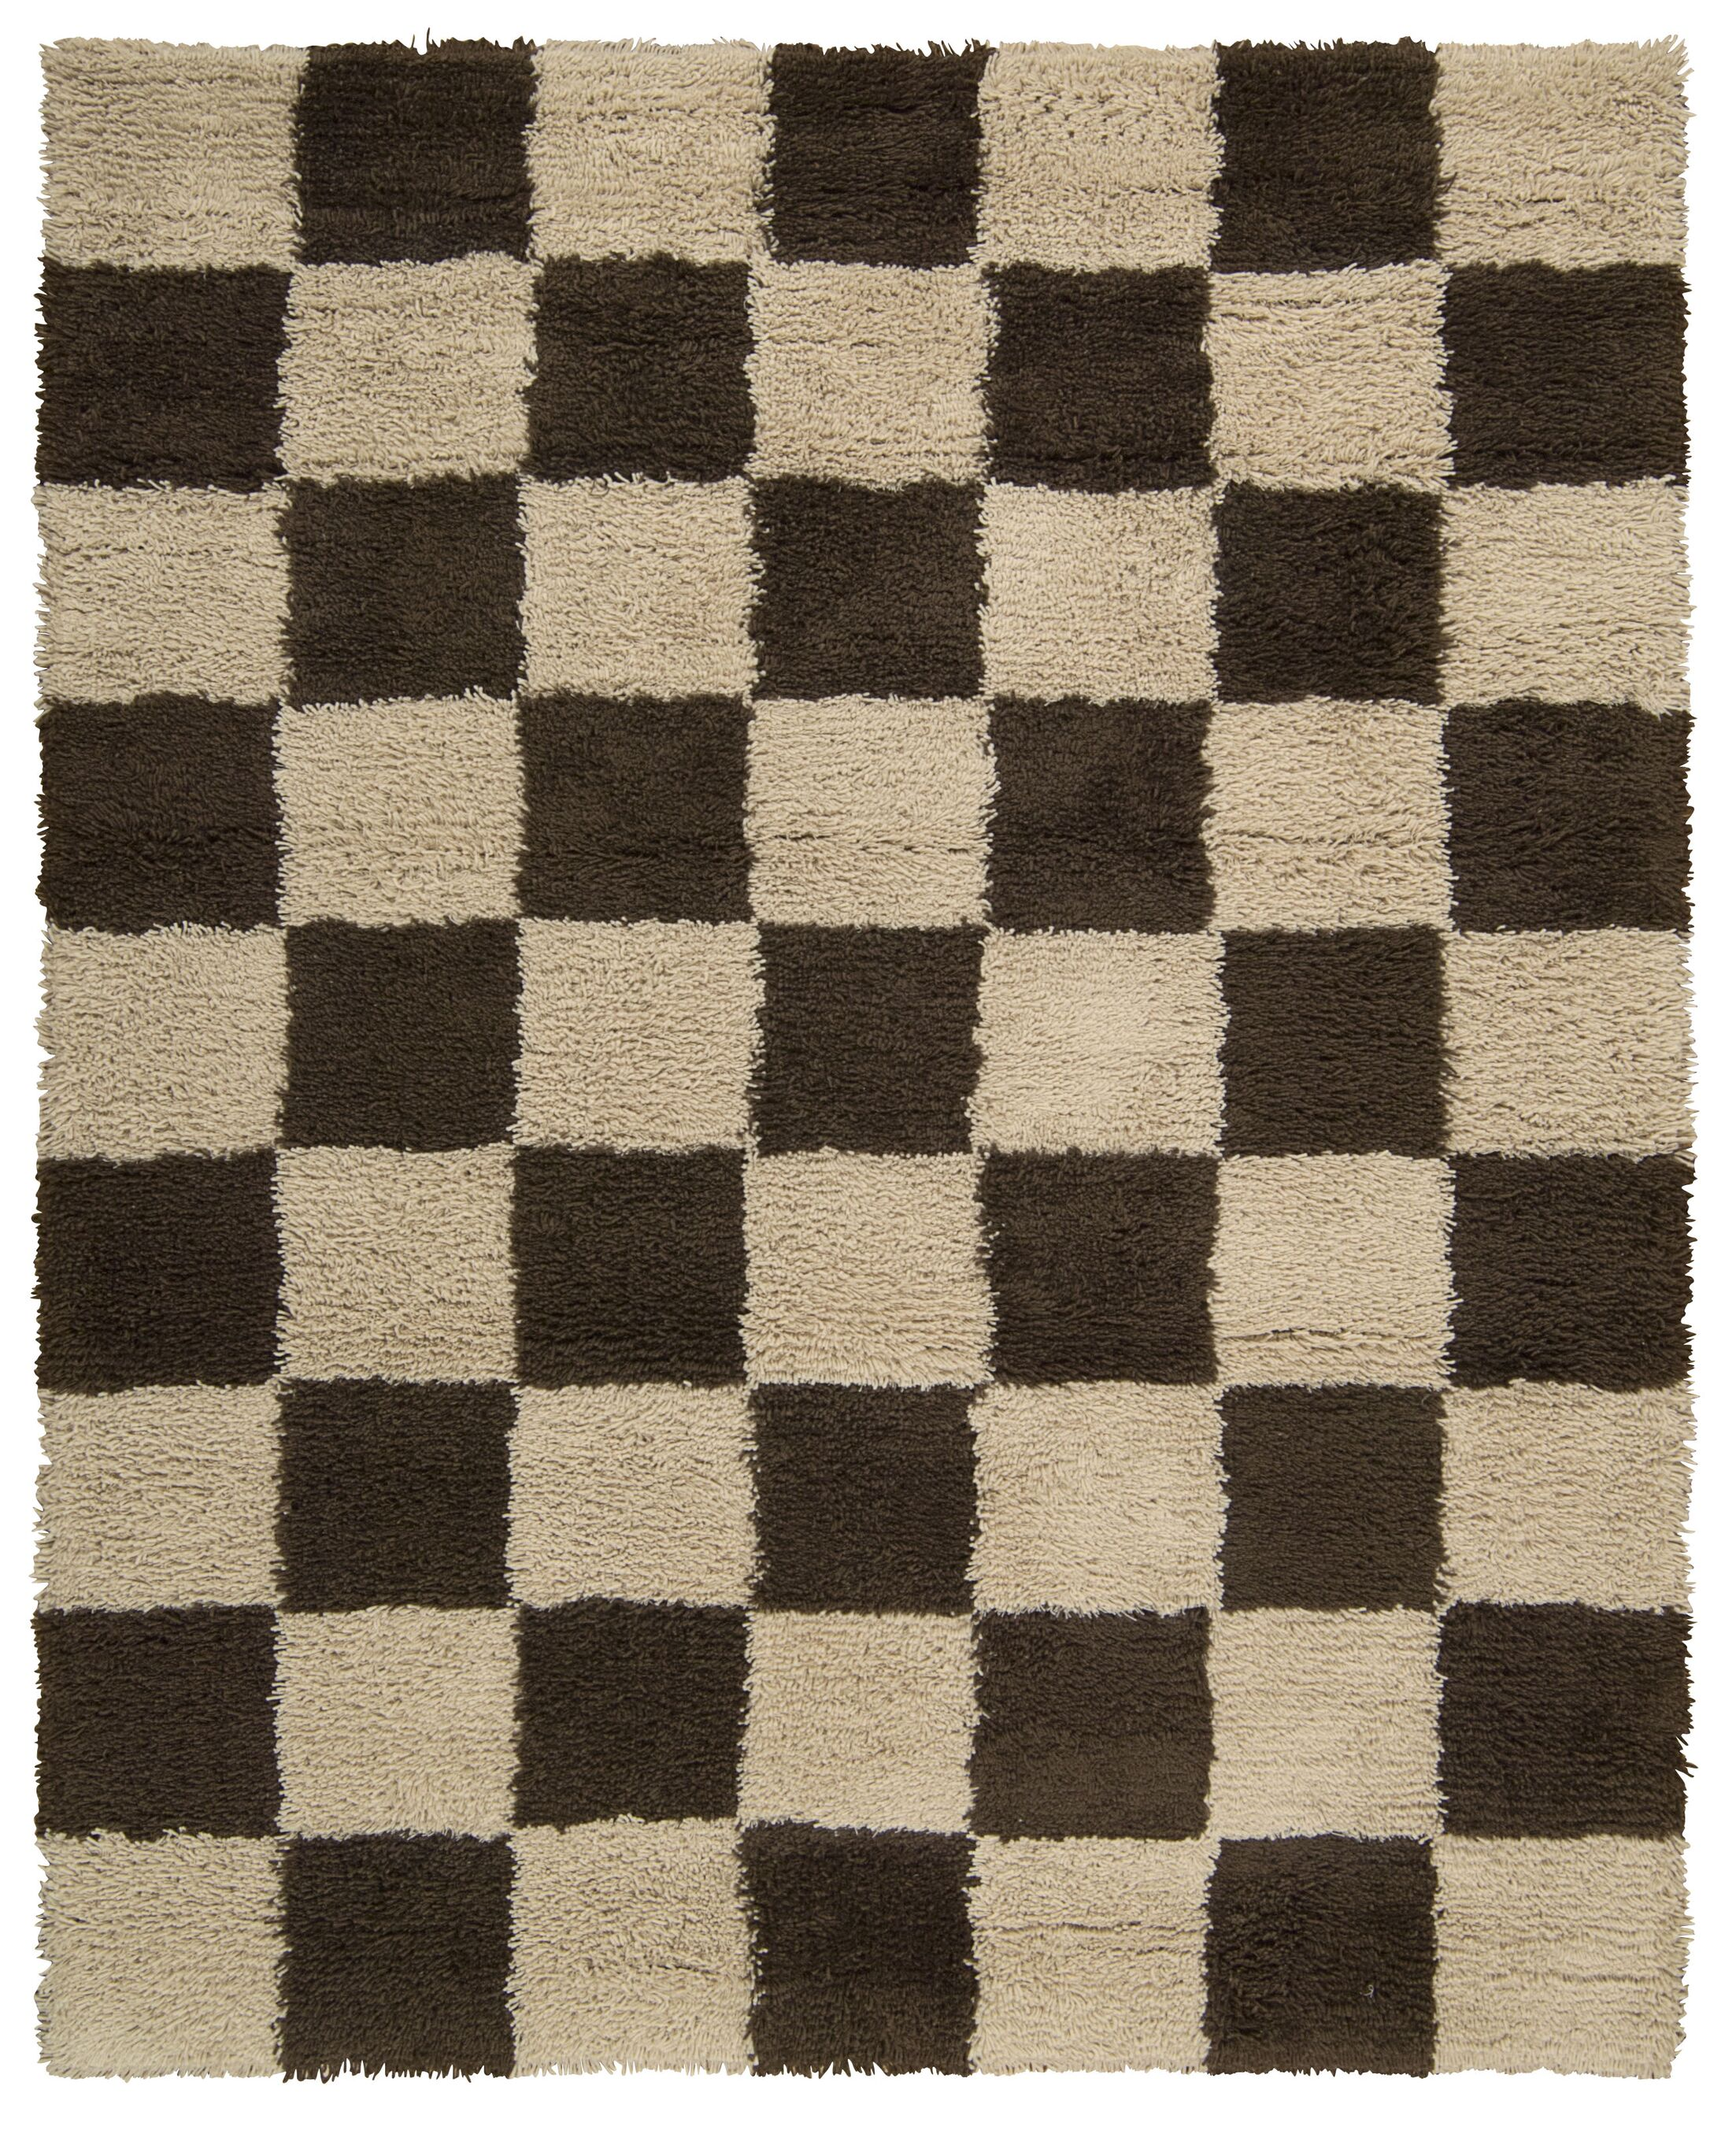 Splendor Hand-Tufted Beige Area Rug Rug Size: Rectangle 5' x 8'